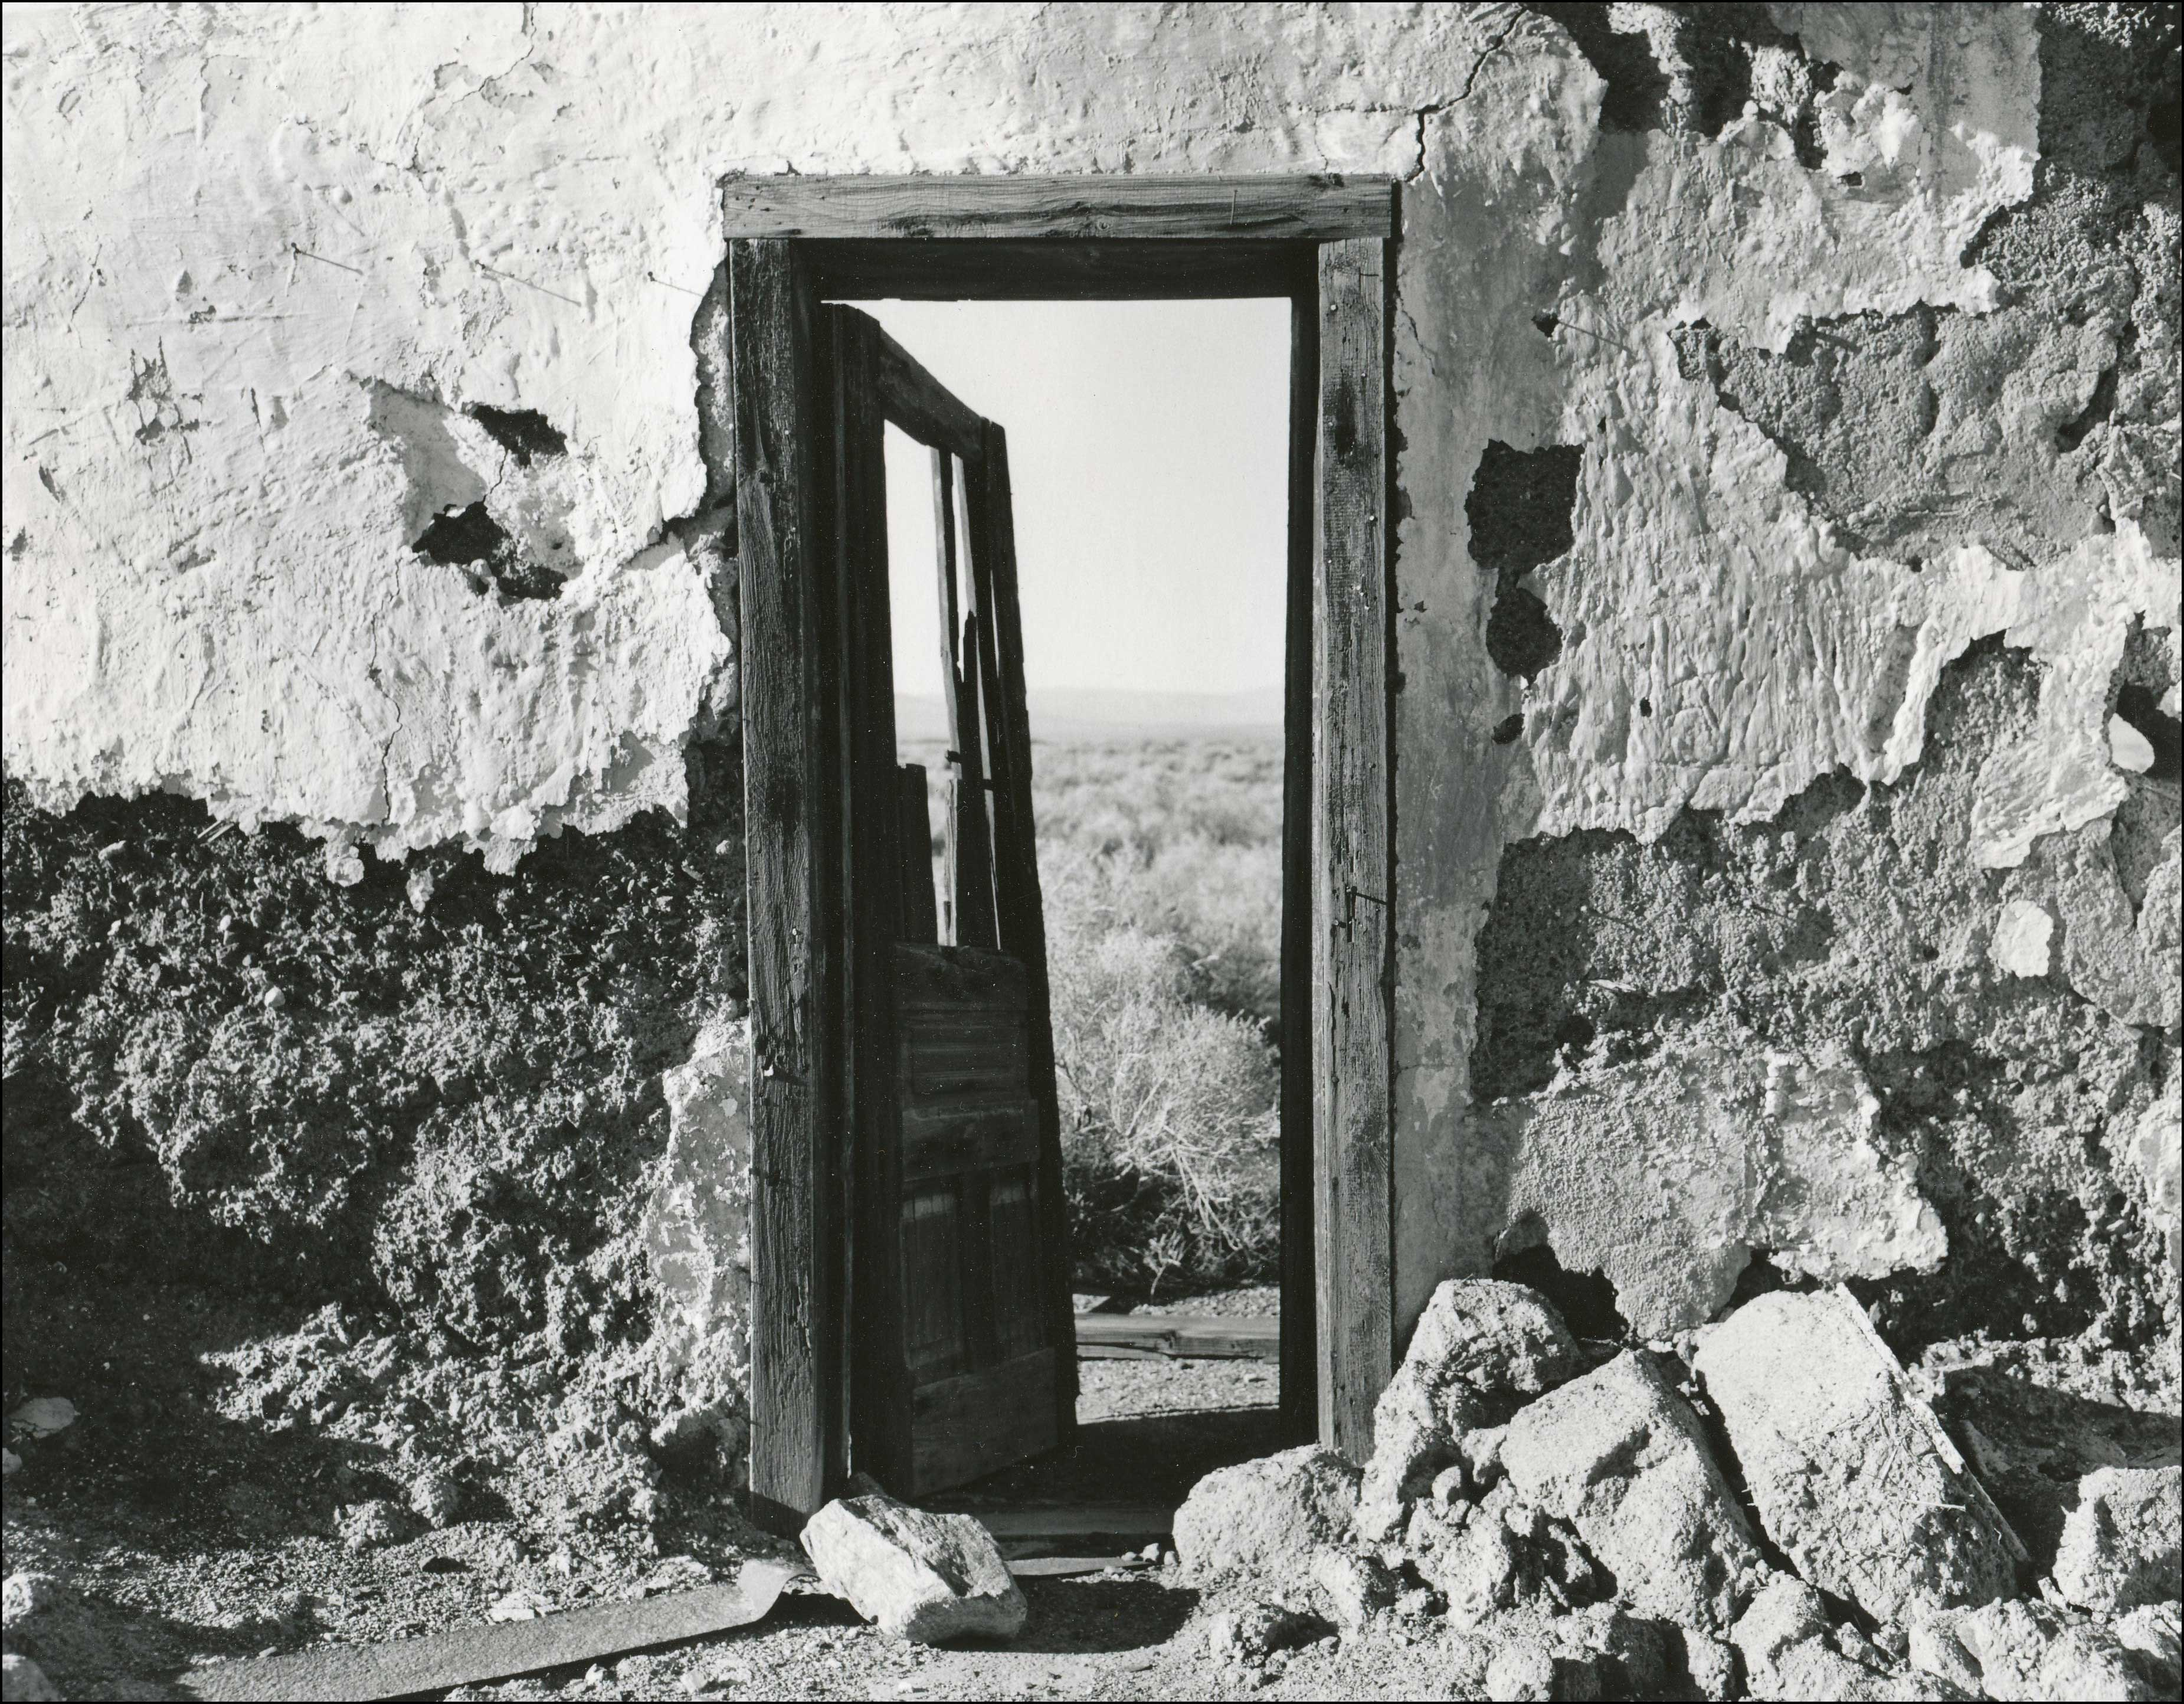 open door with wood frame still set in very old building